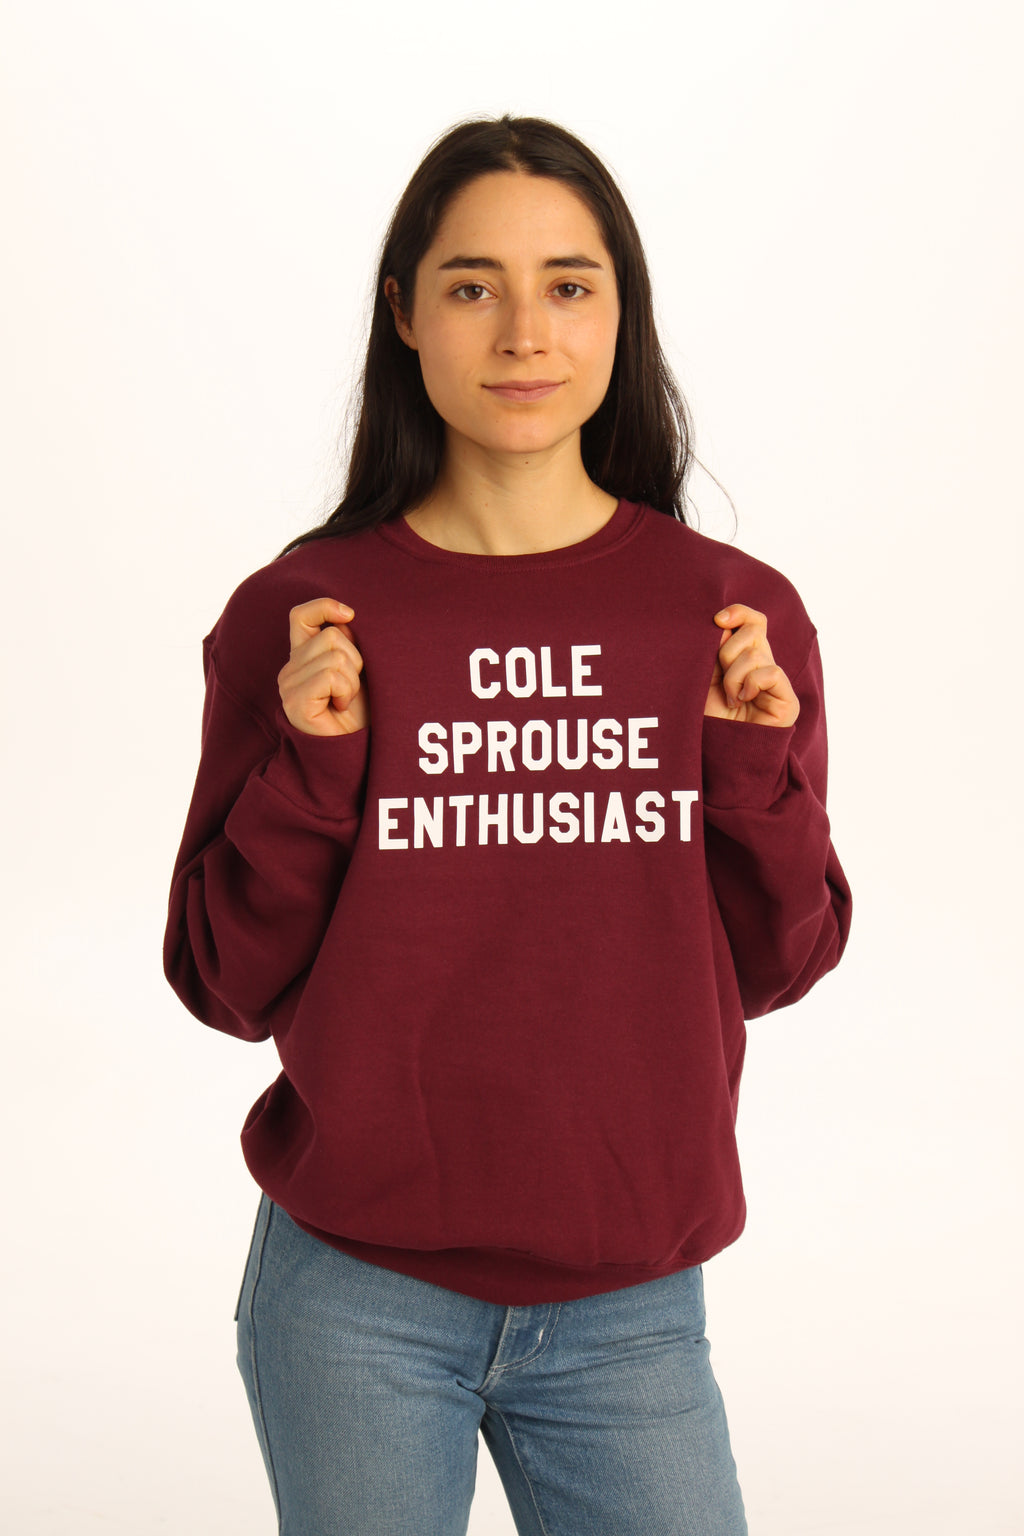 Cole Sprouse Enthusist Sweatshirt - Totally Good Time